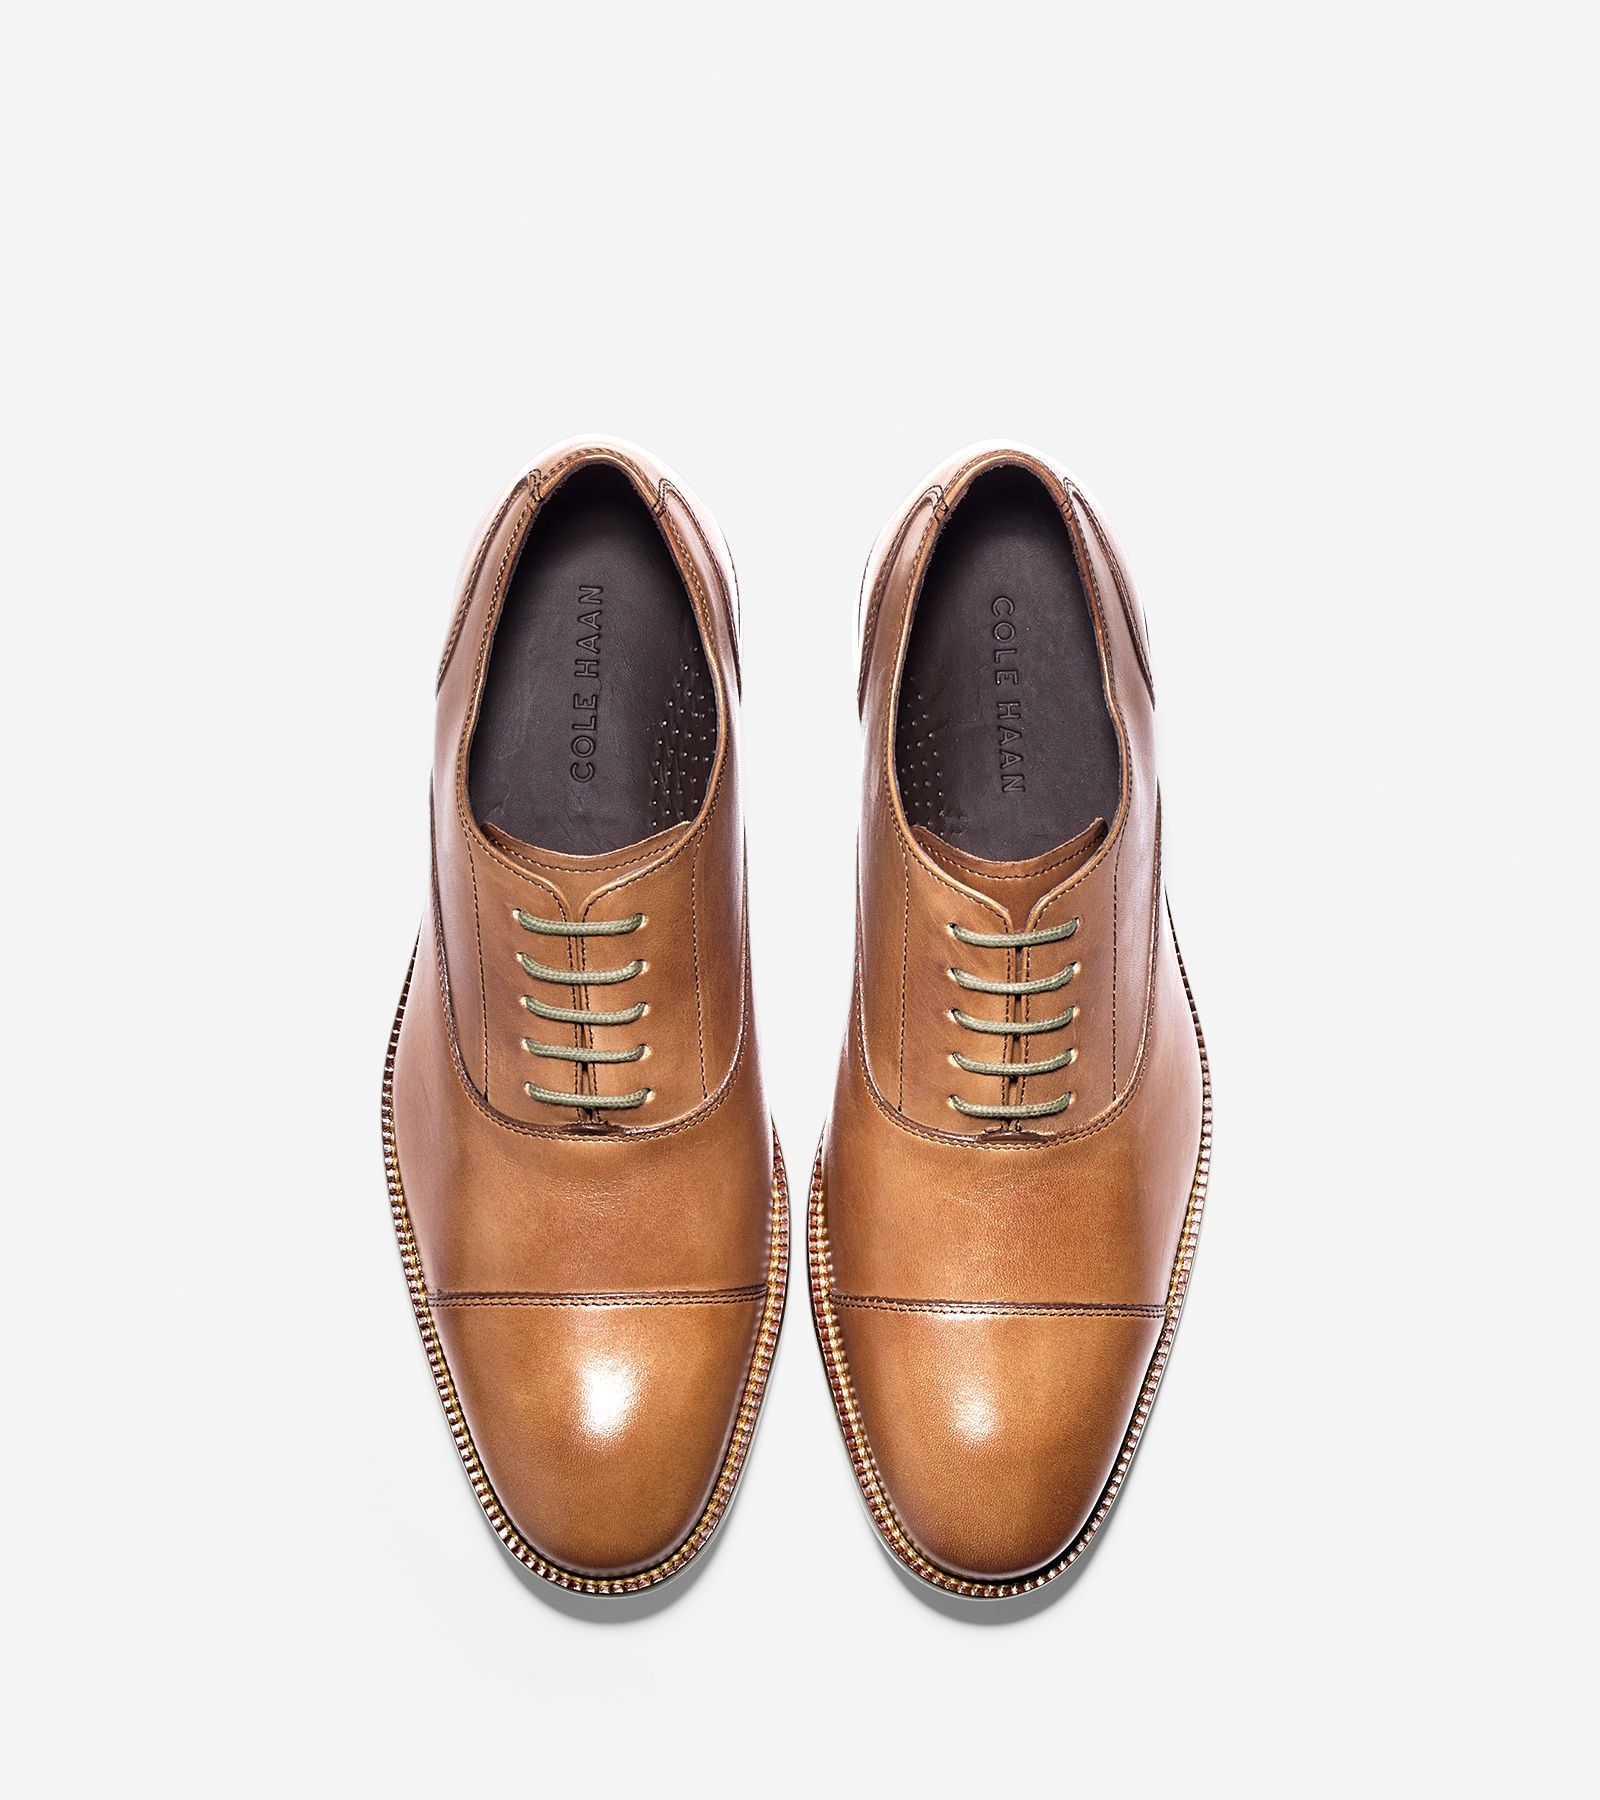 5161bc1c713e Williams Cap Toe Oxford - British Tan by Cole Haan in 2019 ...